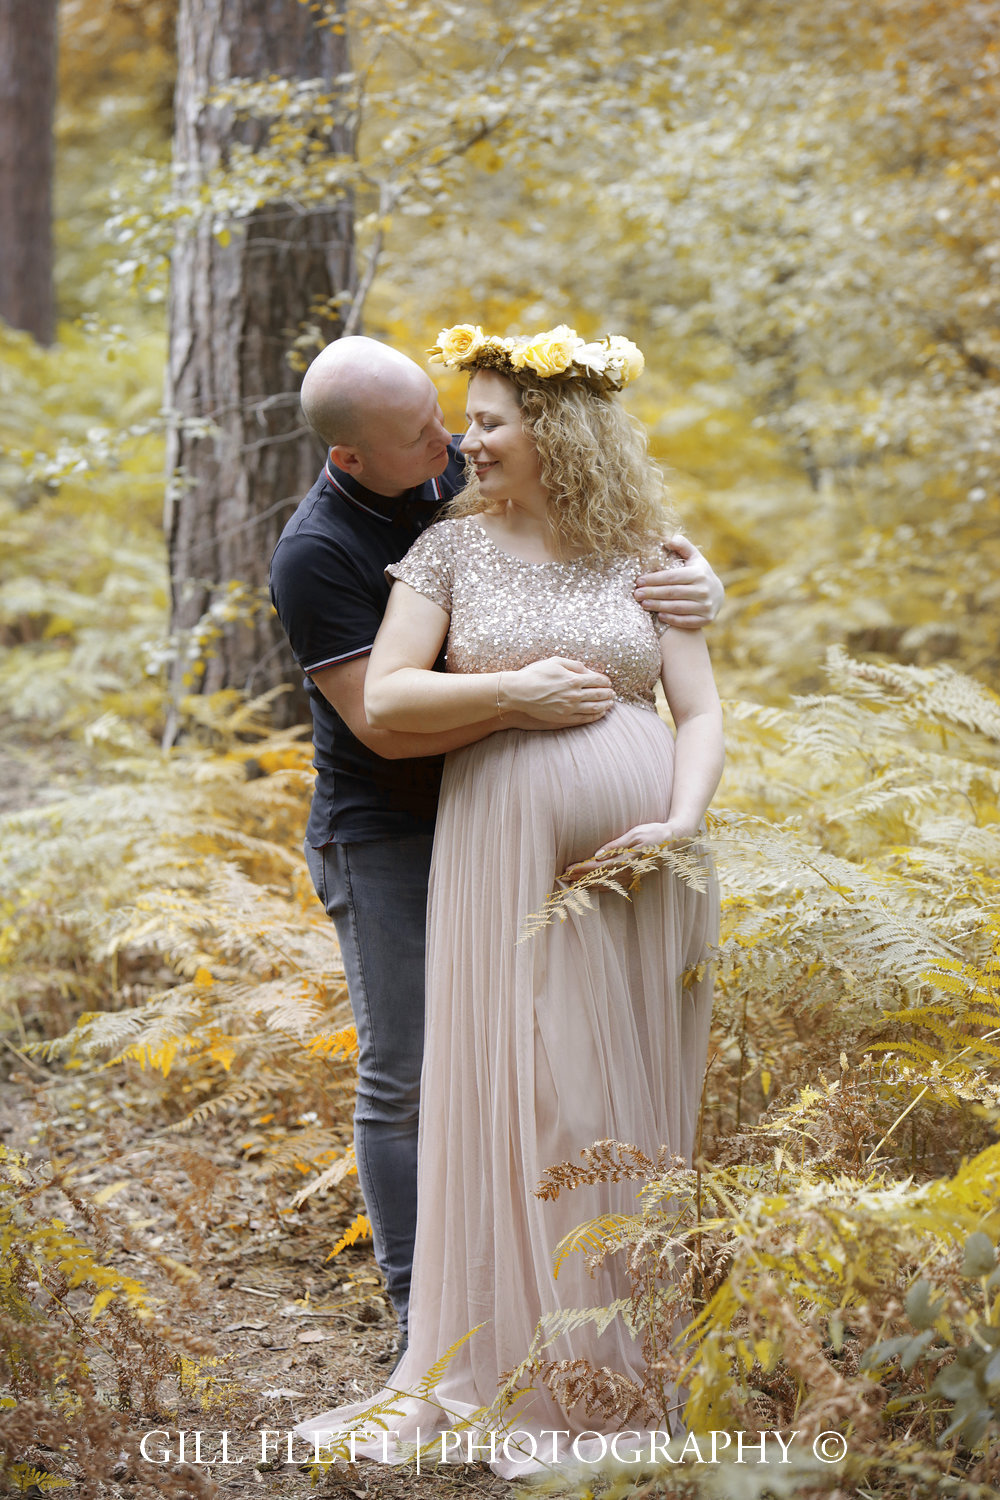 maternity-outdoor-gillflett-london_img_0002.jpg